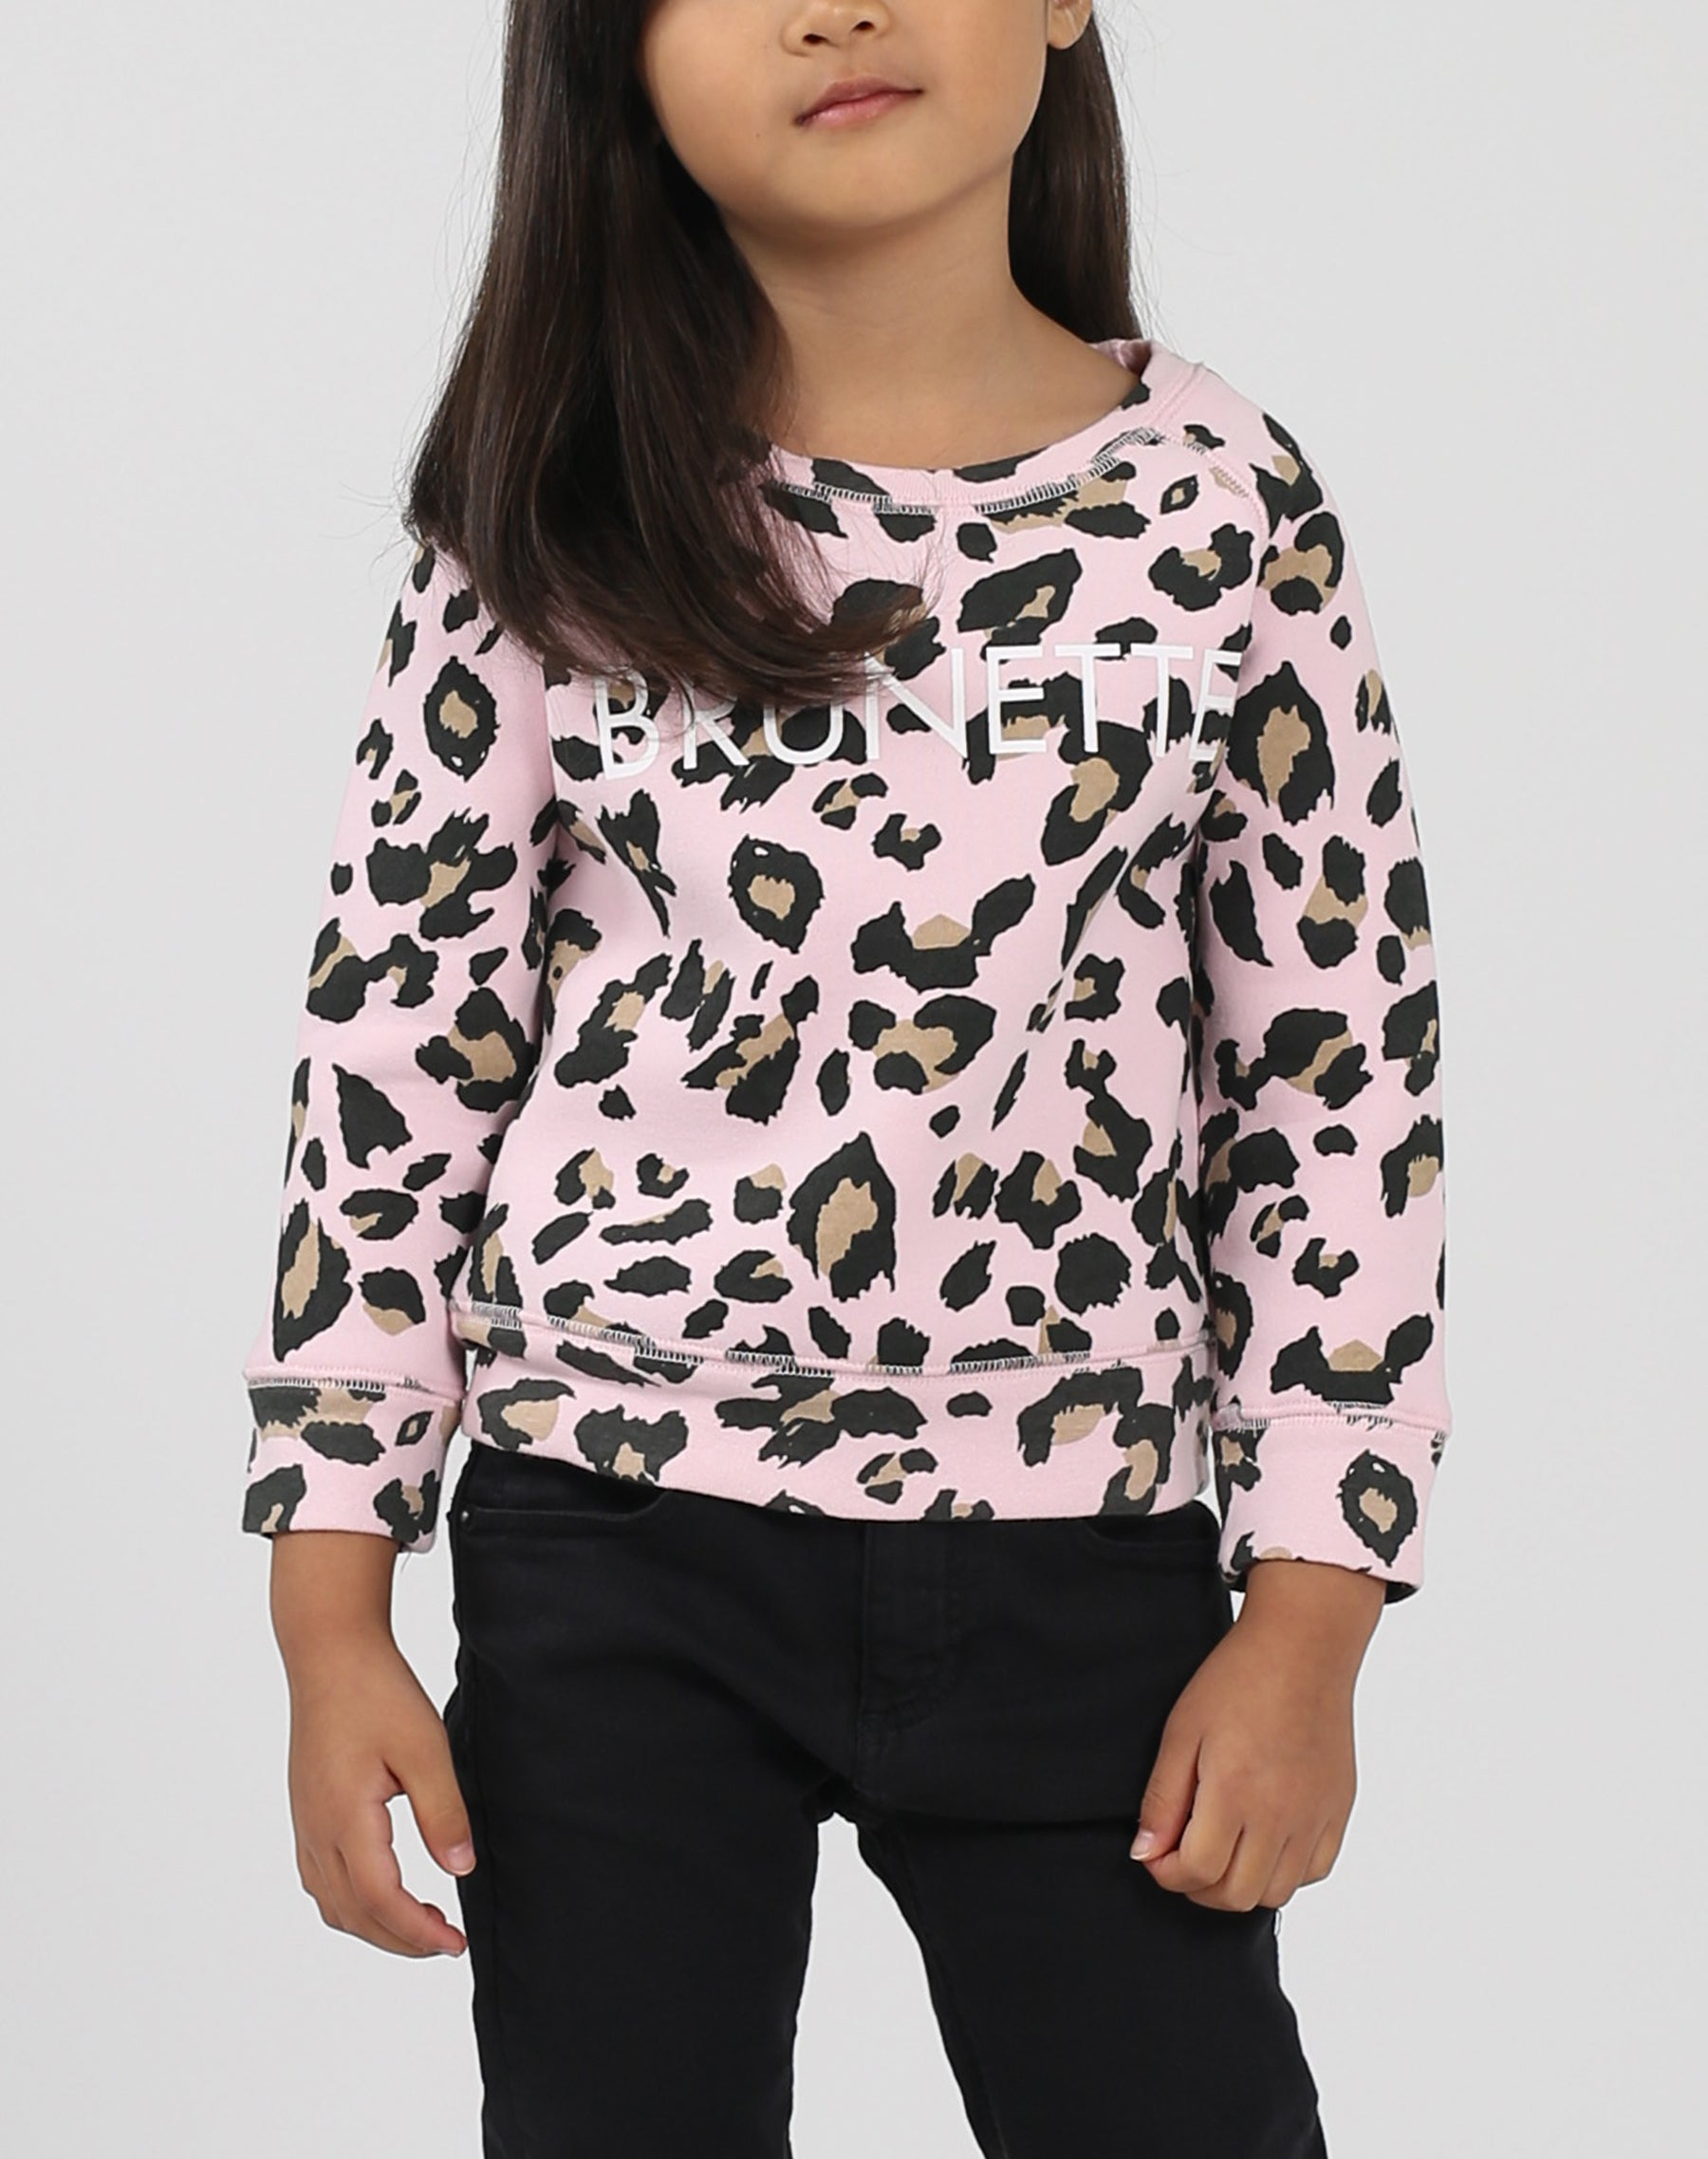 This is a photo of a model wearing the Little Babes Brunette Crew Neck Sweatshirt in Pink Leopard by Brunette The Label.